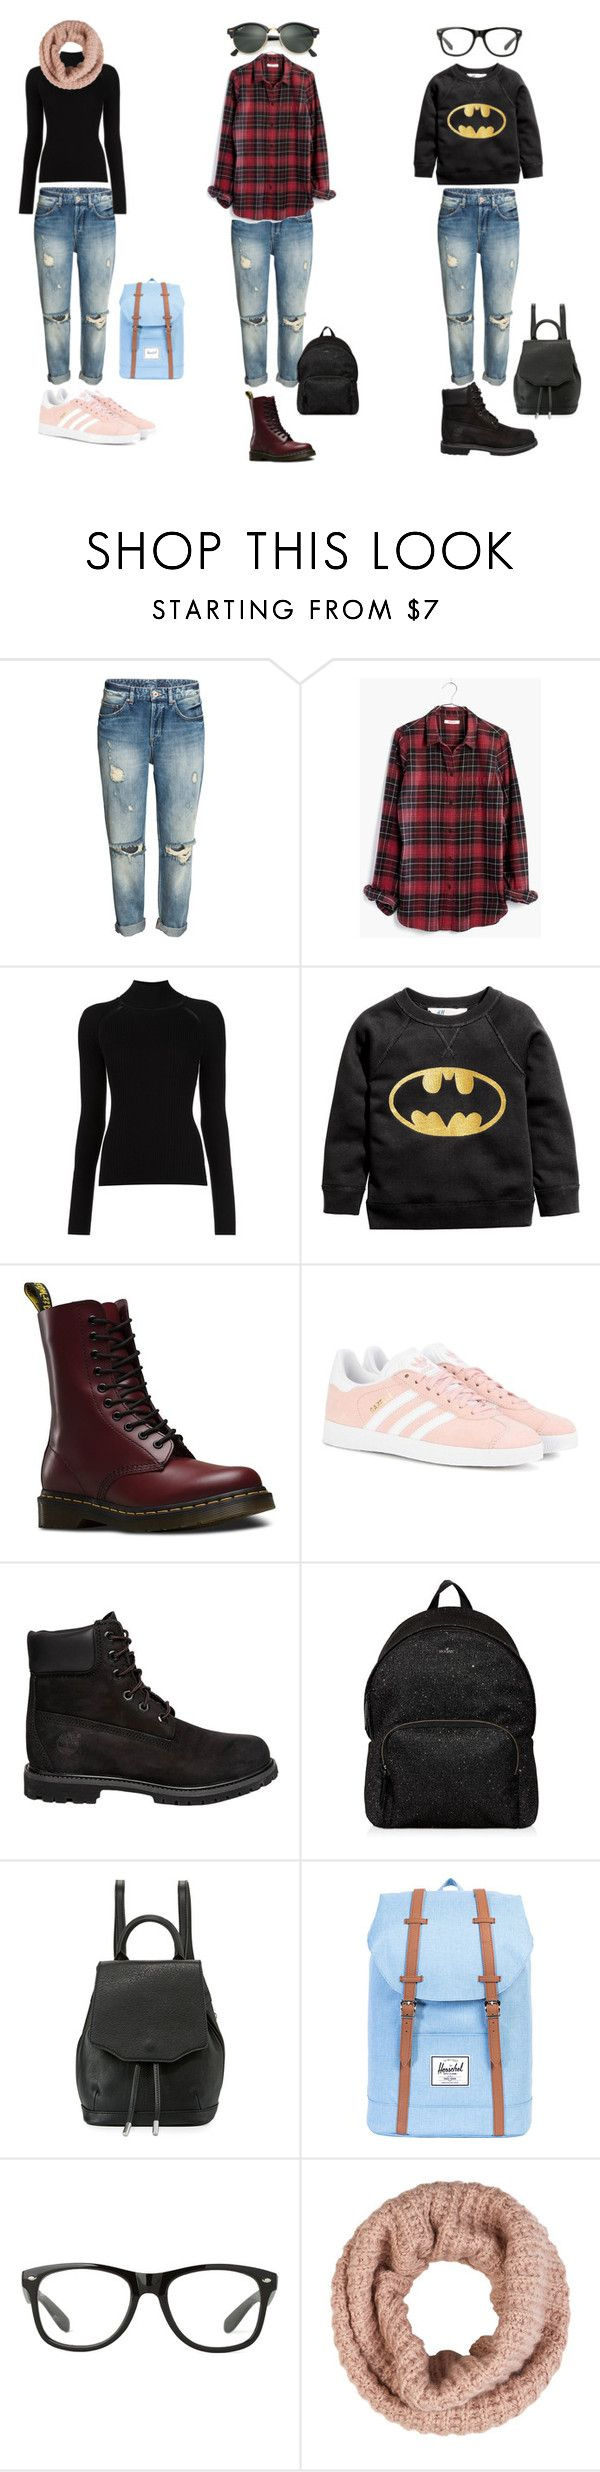 """""""outfit school"""" by anna-lena09 on Polyvore featuring Madewell, Misha Nonoo, Dr. Martens, adidas Originals, Timberland, Hogan, rag & bone, Herschel Supply Co., Accessorize and Ray-Ban"""